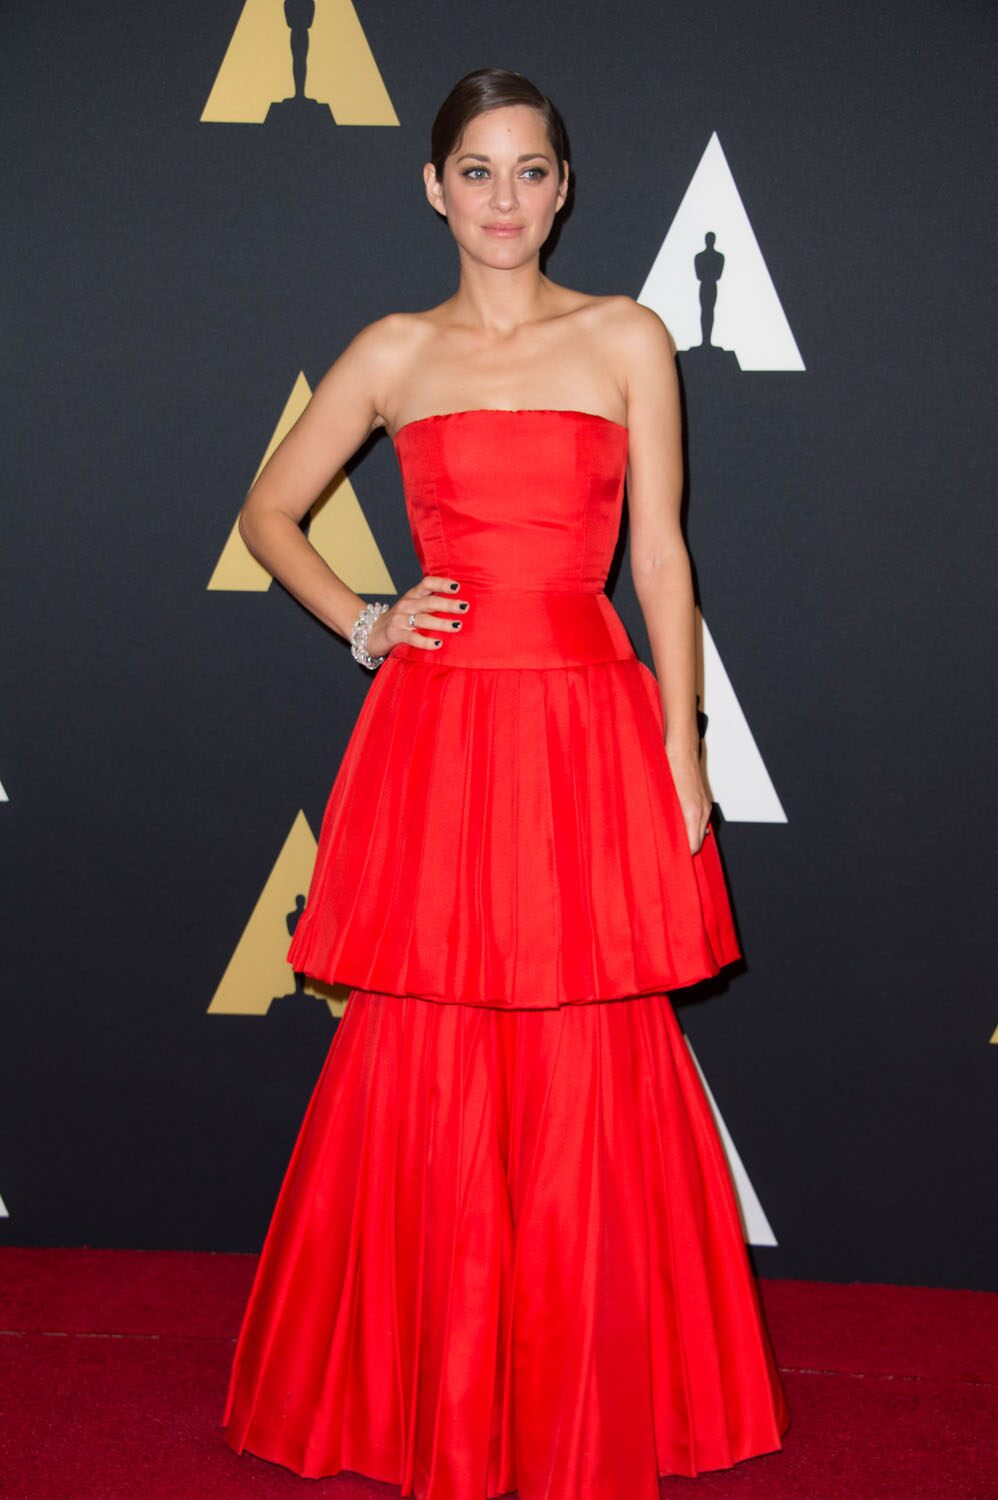 Marion Cotillard at the 6th Annual Governors Awards